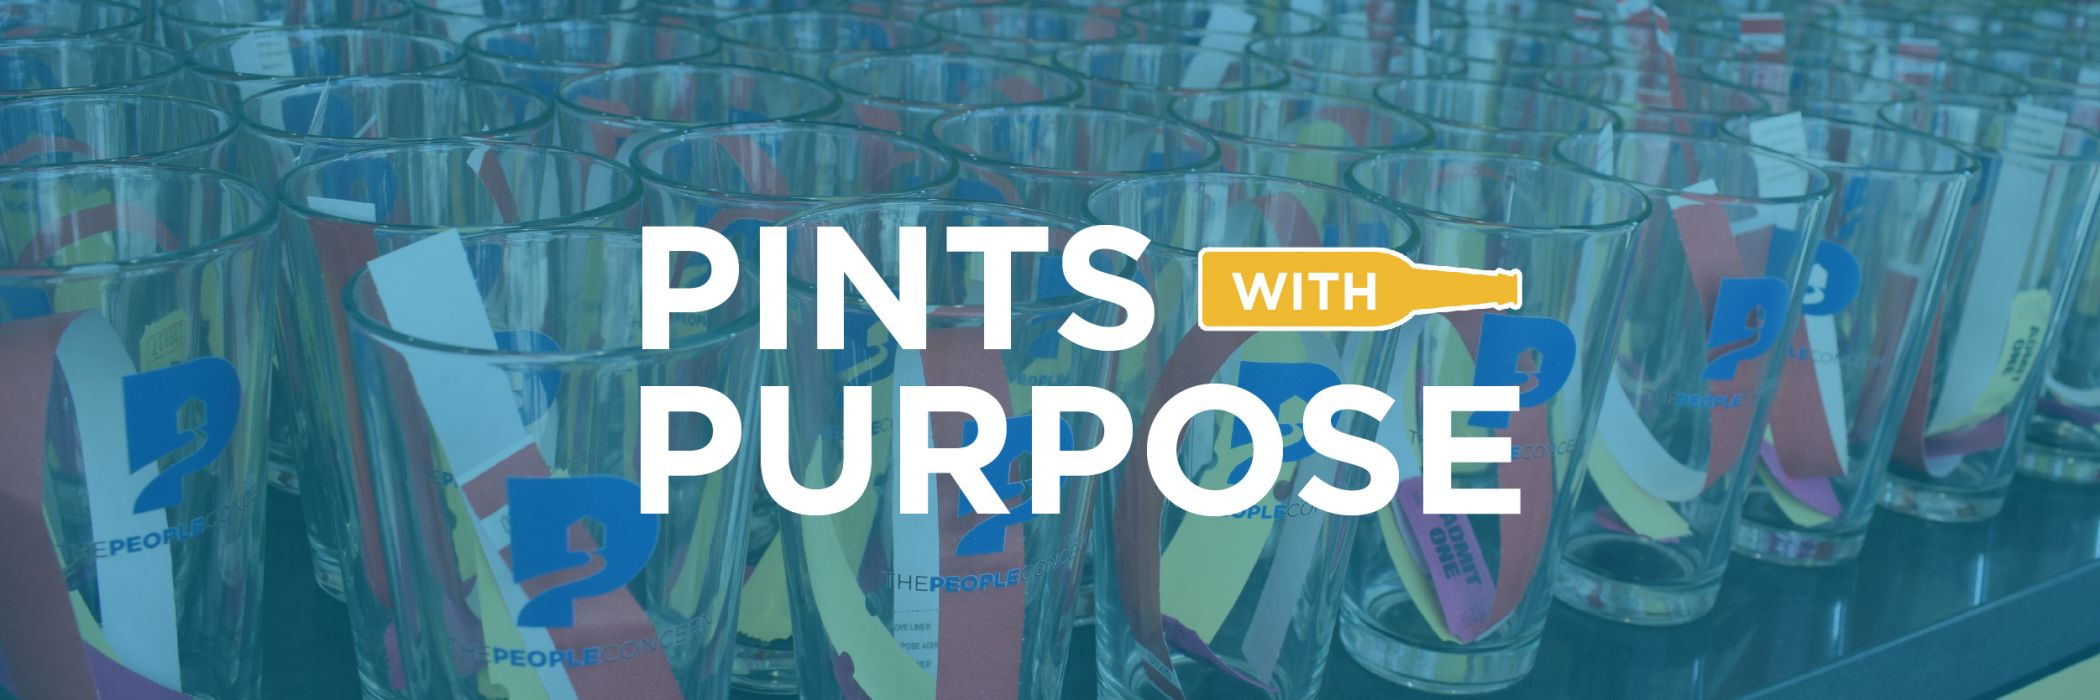 Pints with Purpose